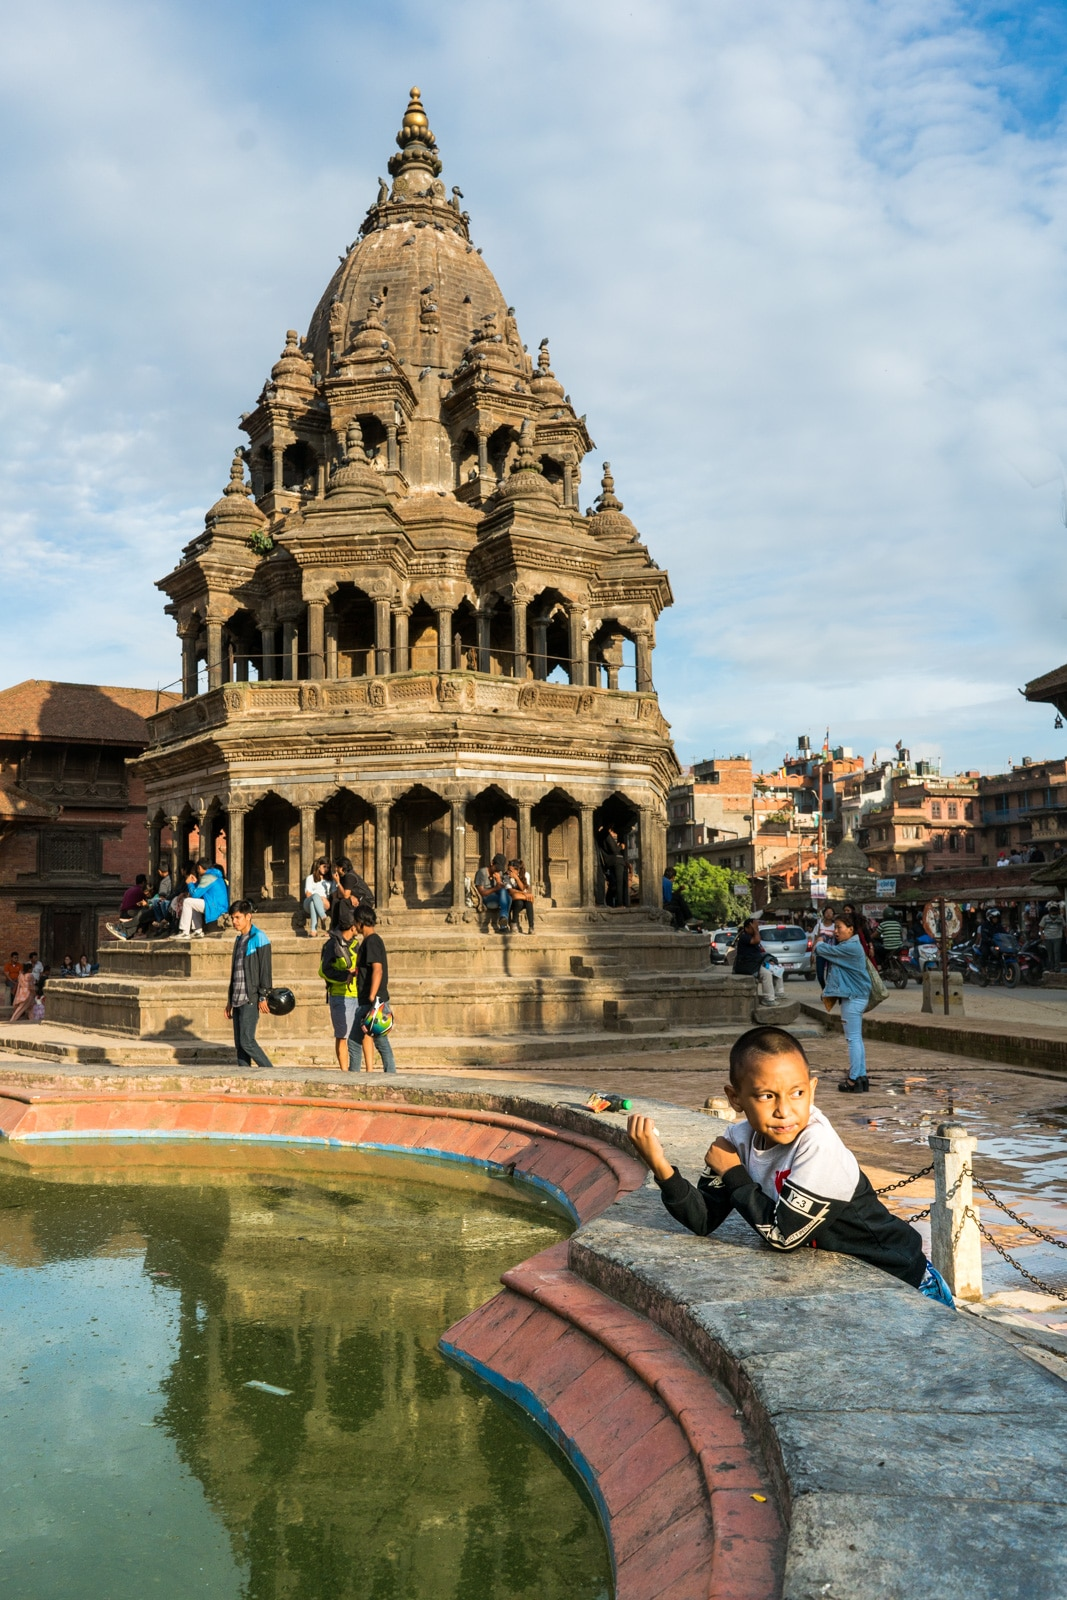 Devious young boy having an ice cream snack in the historic Durbar Square in Patan, Nepal.